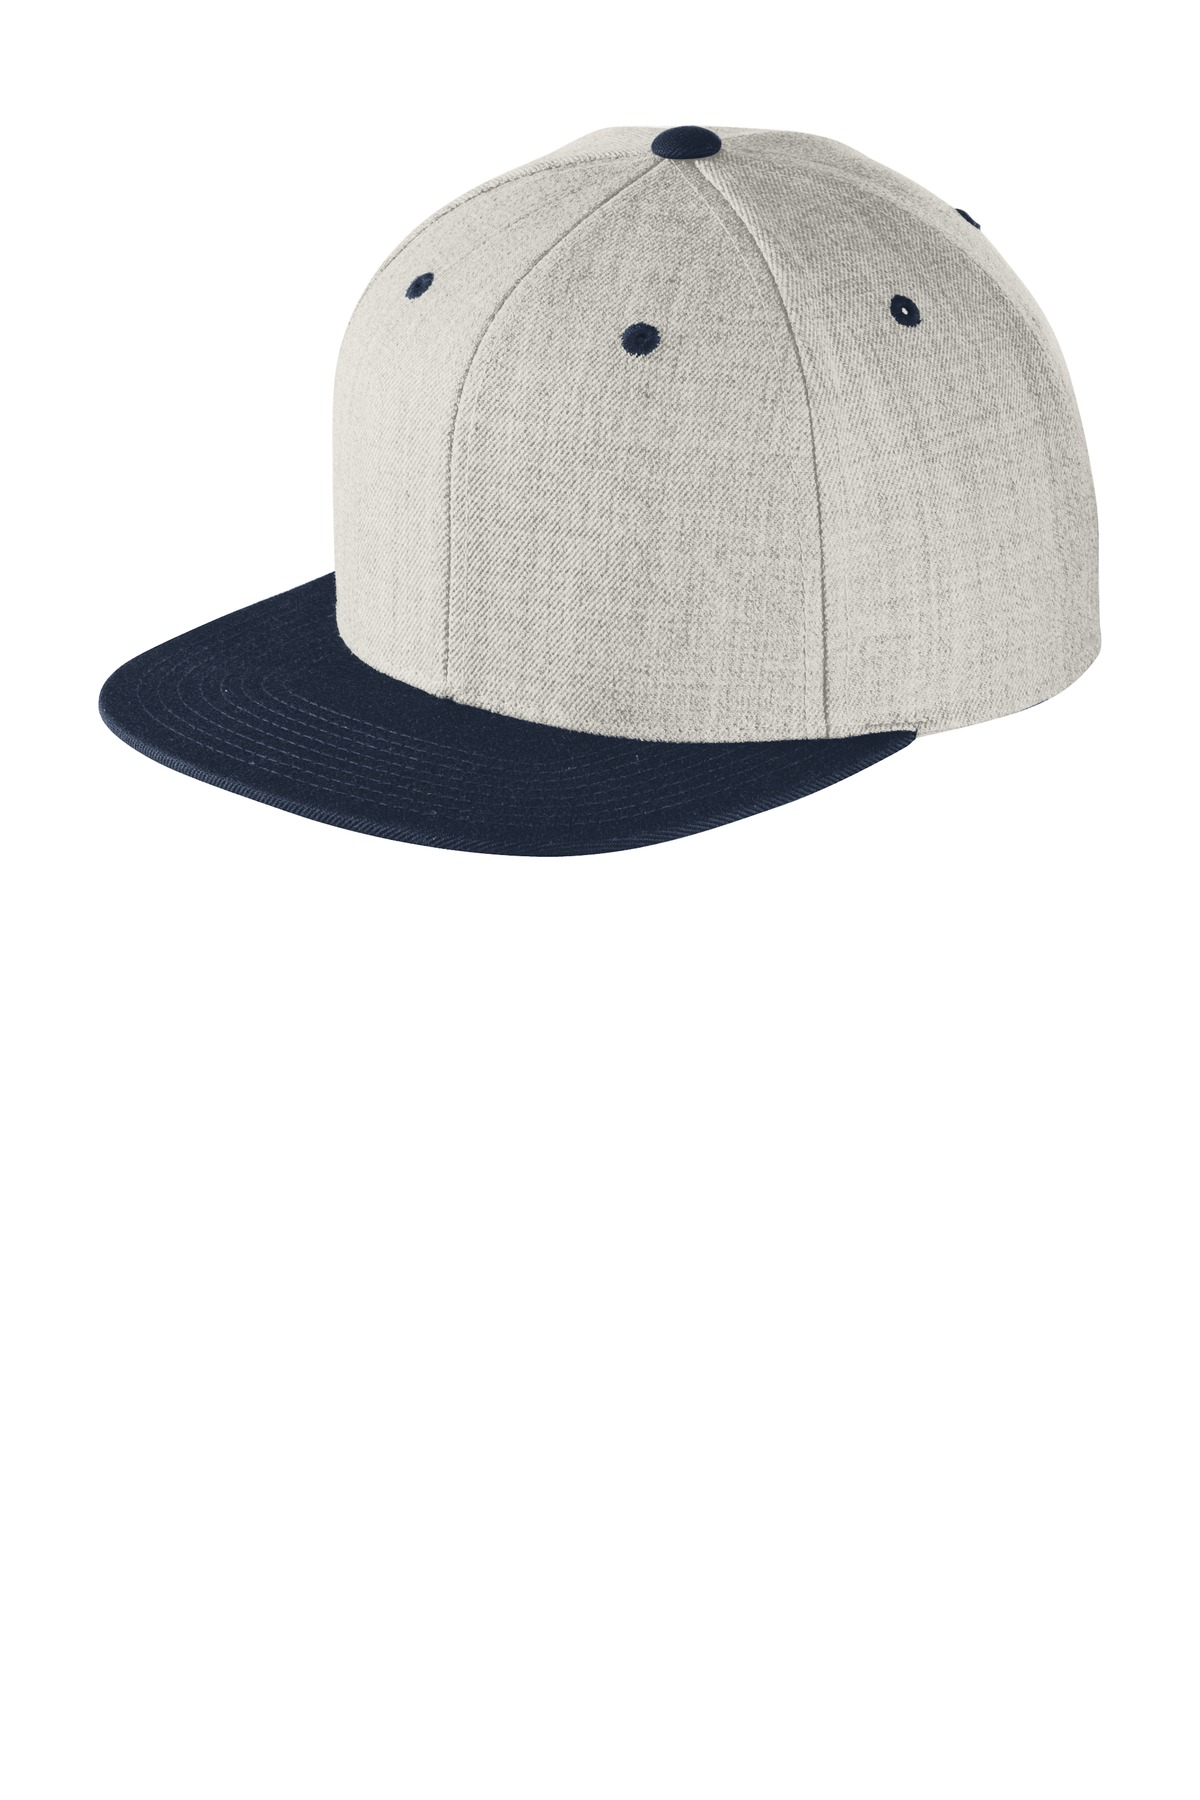 Sport-Tek ®  Yupoong ®  Flat Bill Snapback Cap. STC19 - Heather/ True Navy